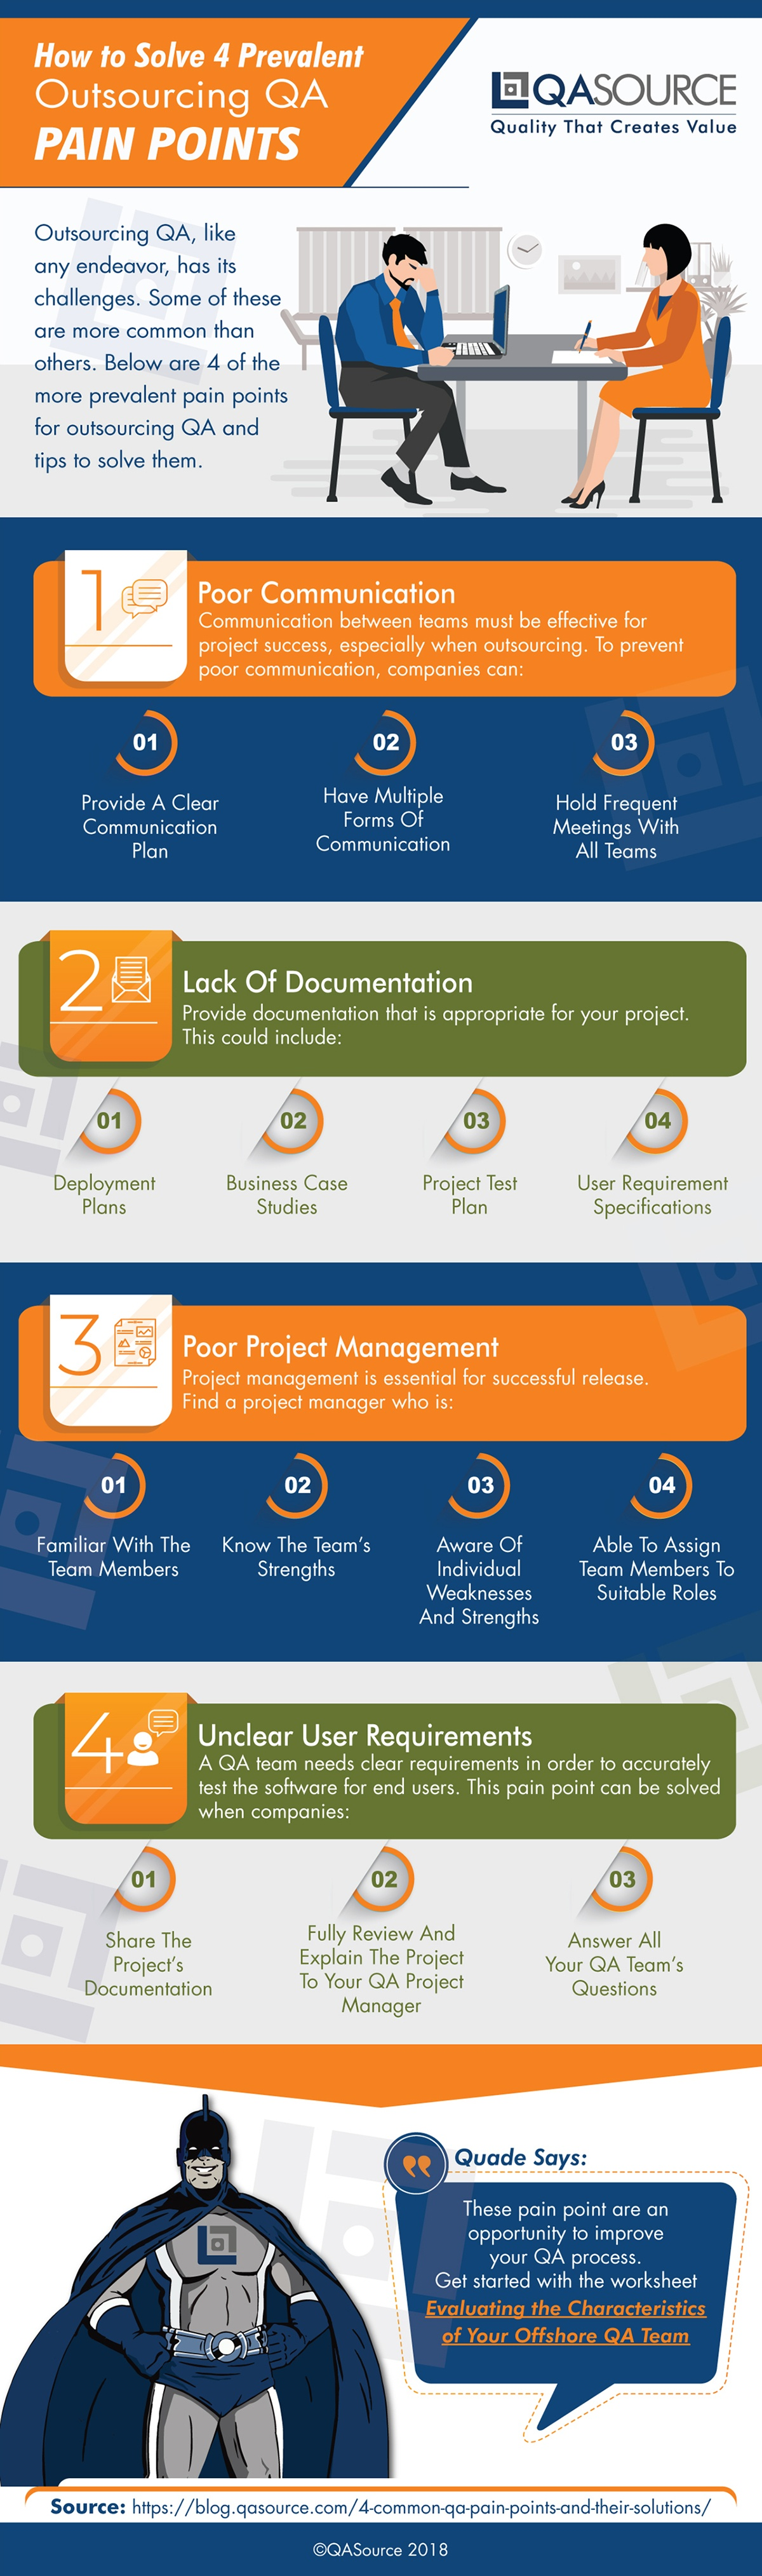 How to Solve 4 Prevalent Outsourcing QA Pain Points (Infographic)